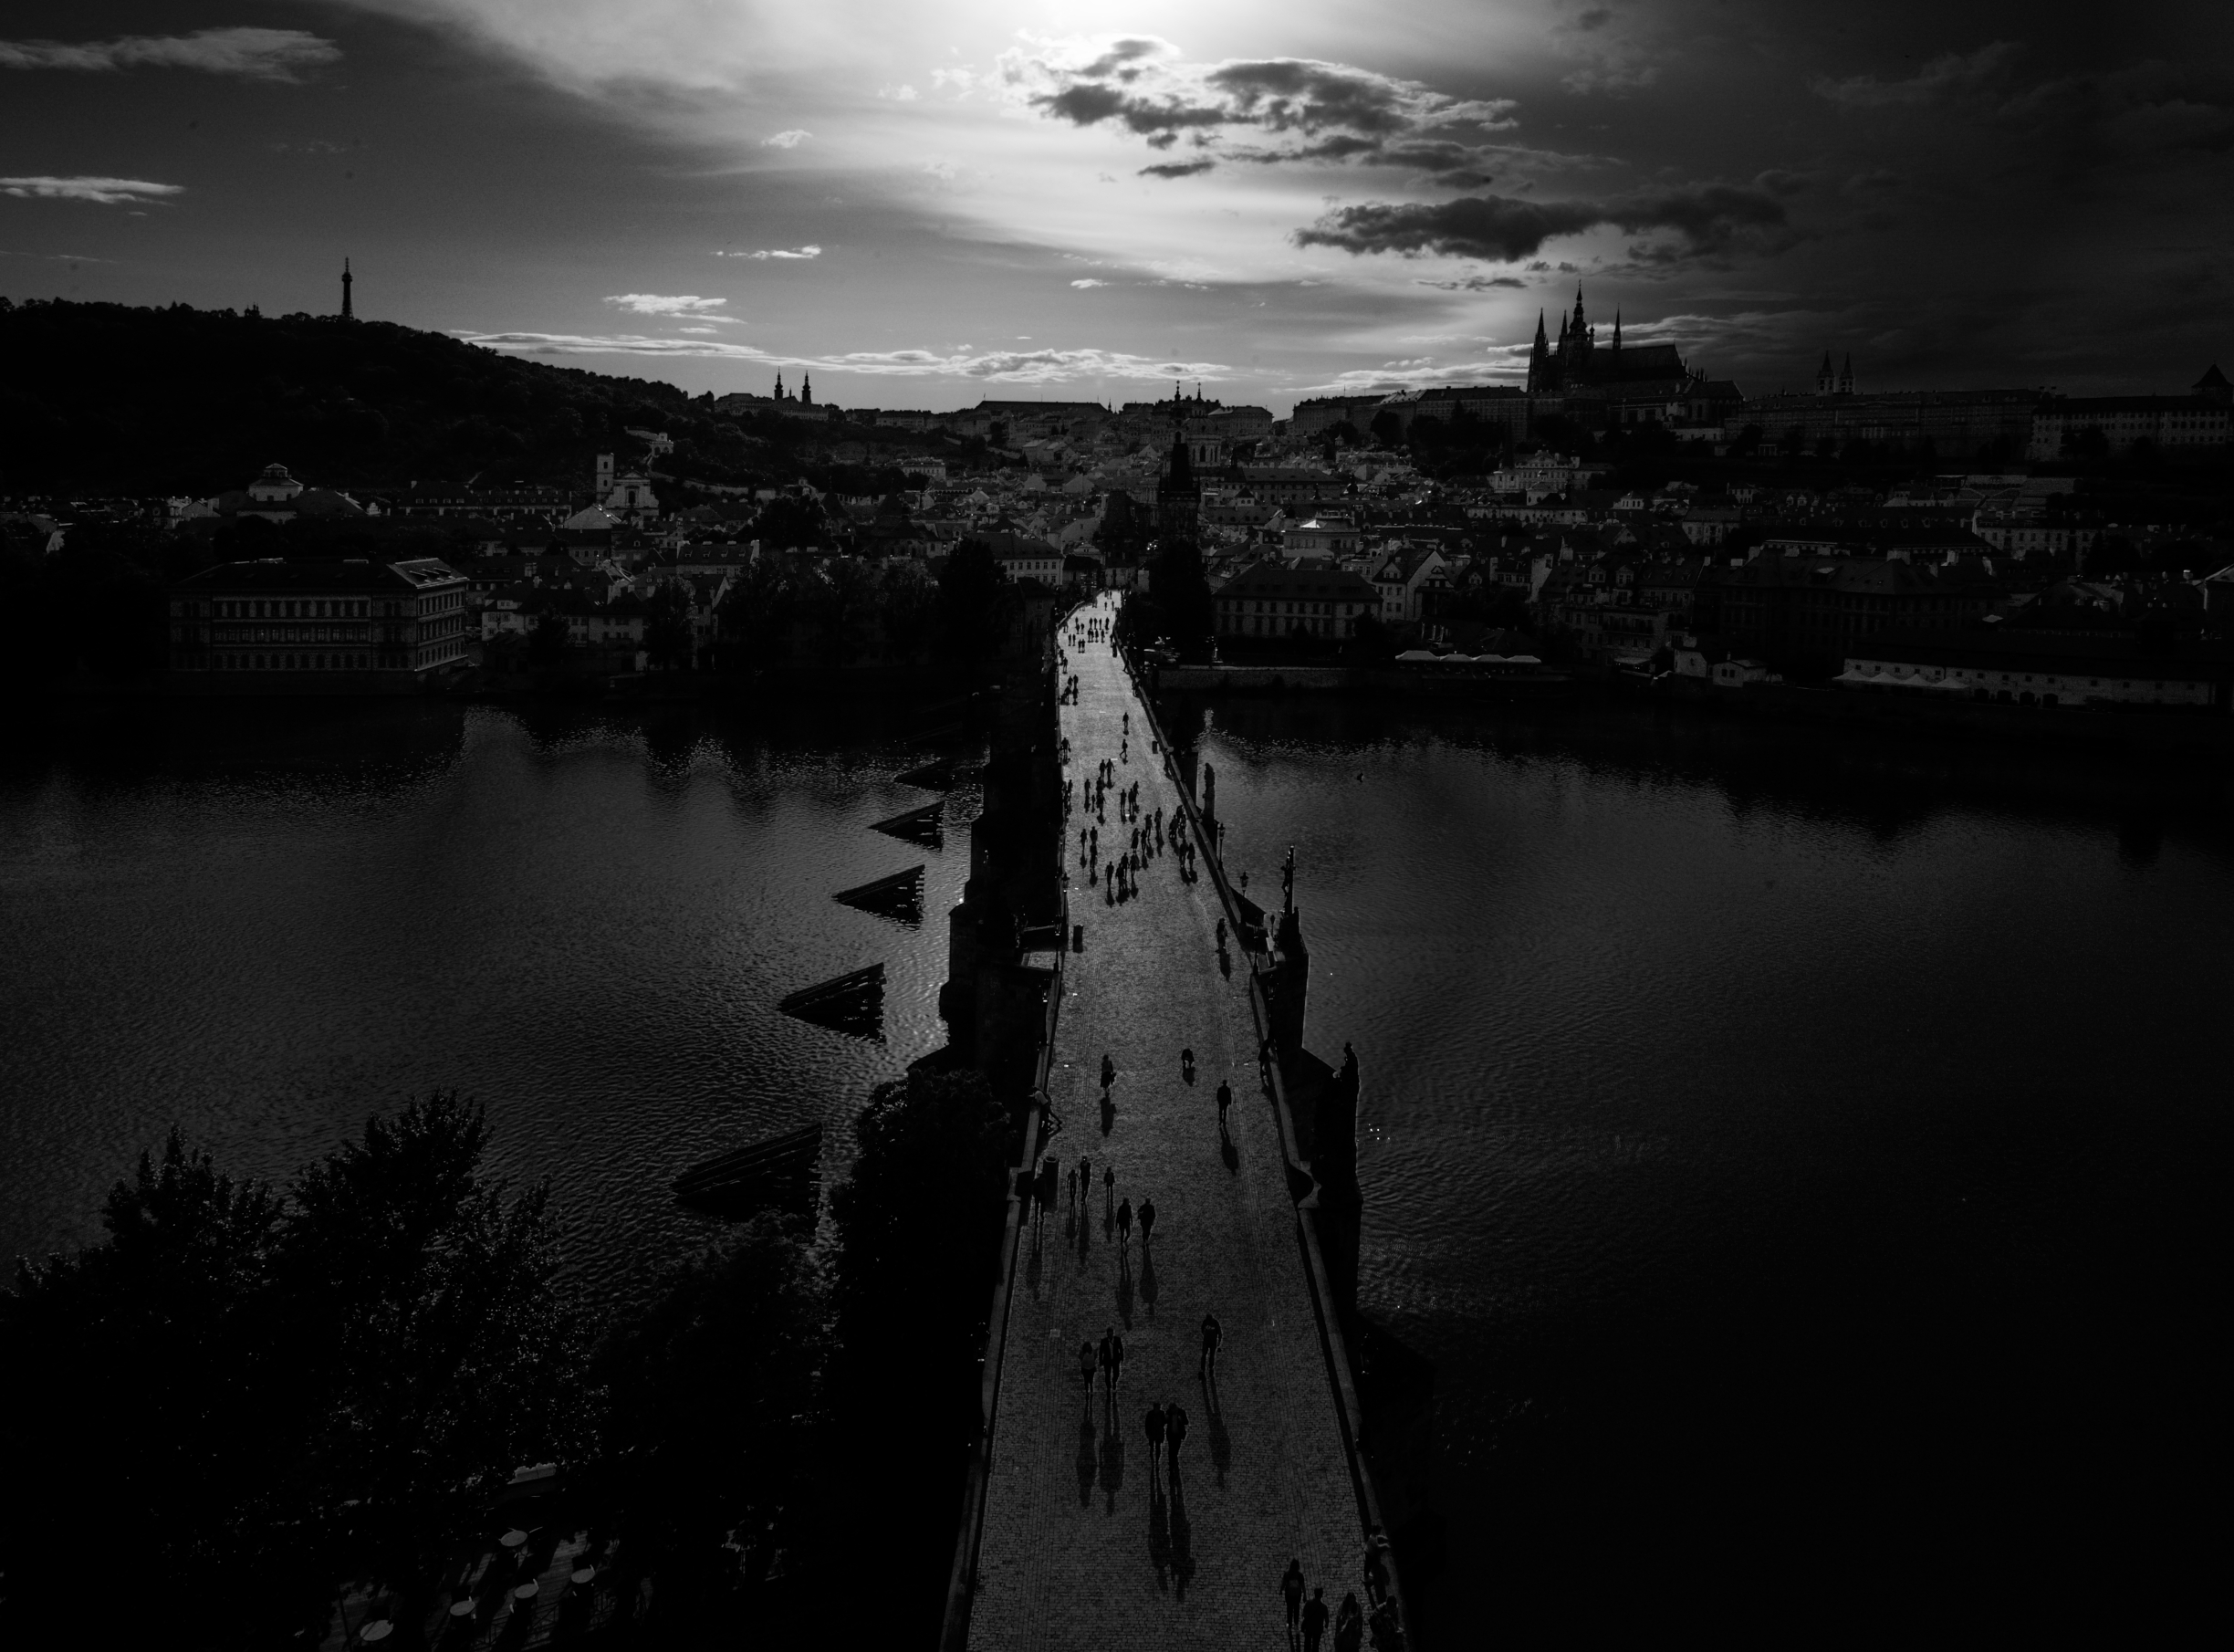 Charles Bridge and Hradčany